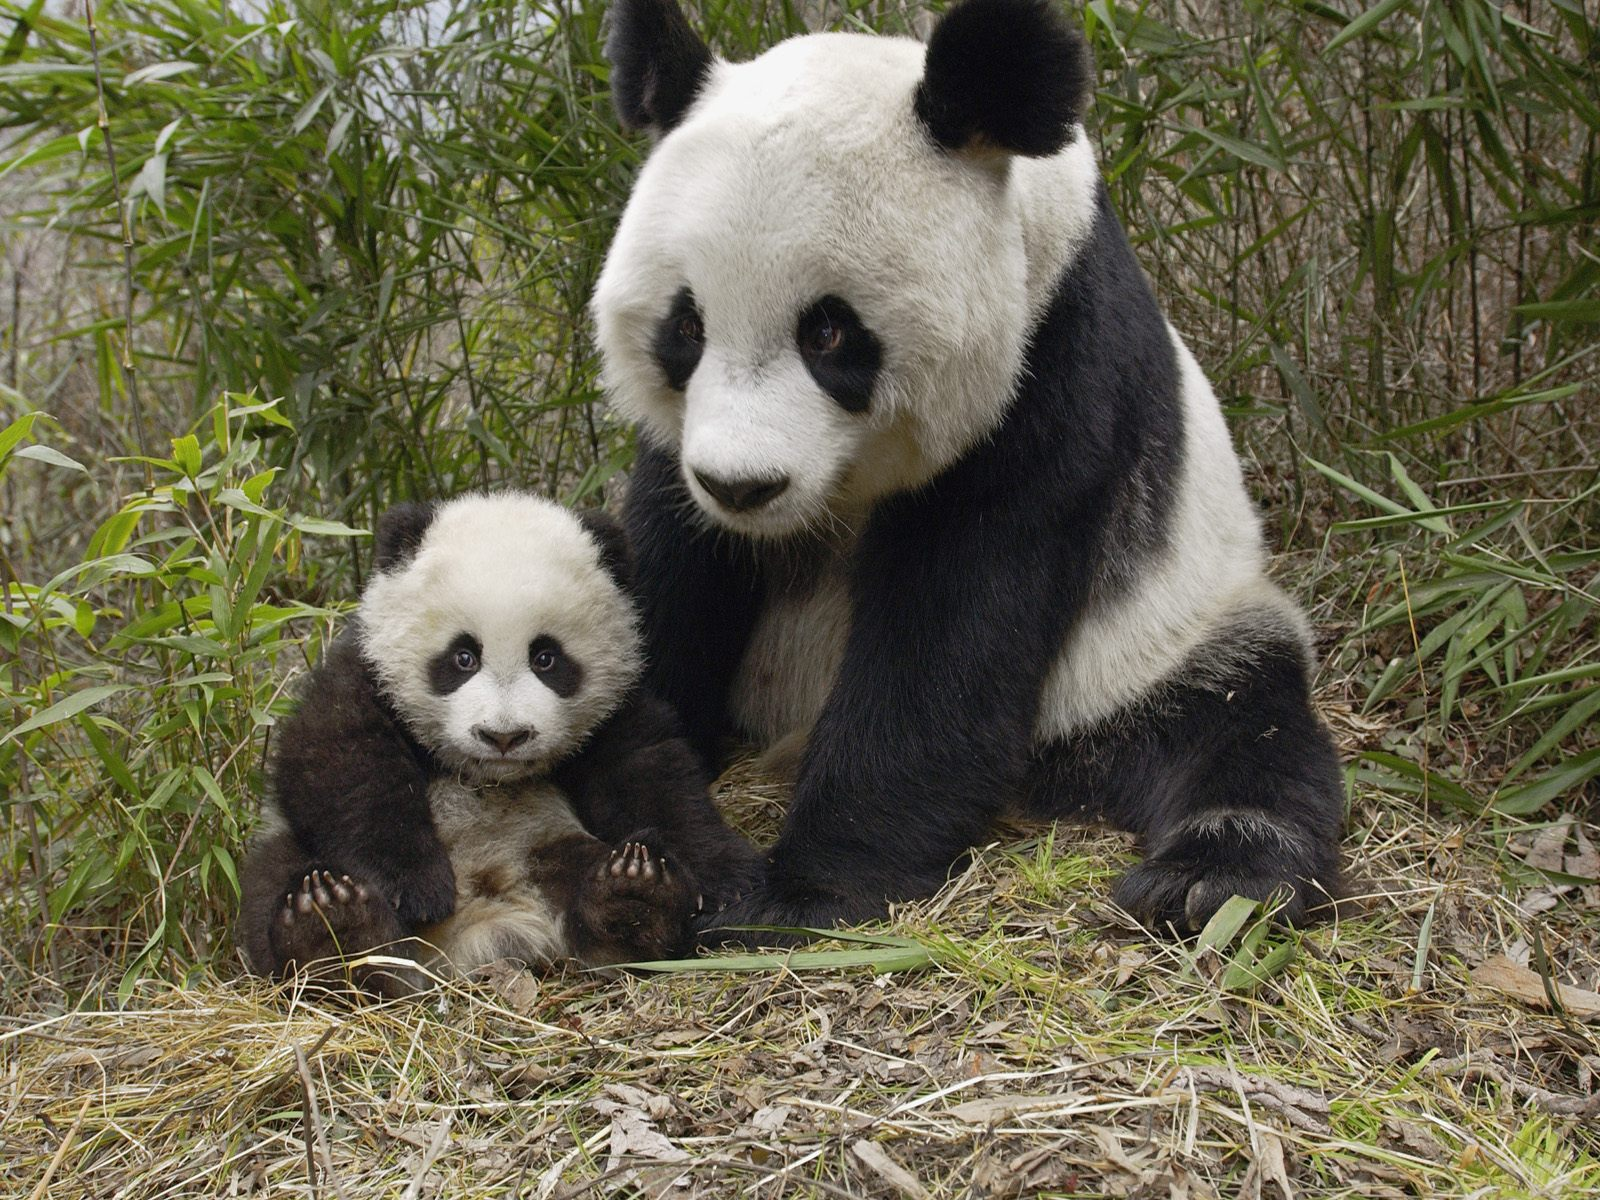 Free Wallpapers: Panda Wallpaper, Wallpaper Panda, Baby ...